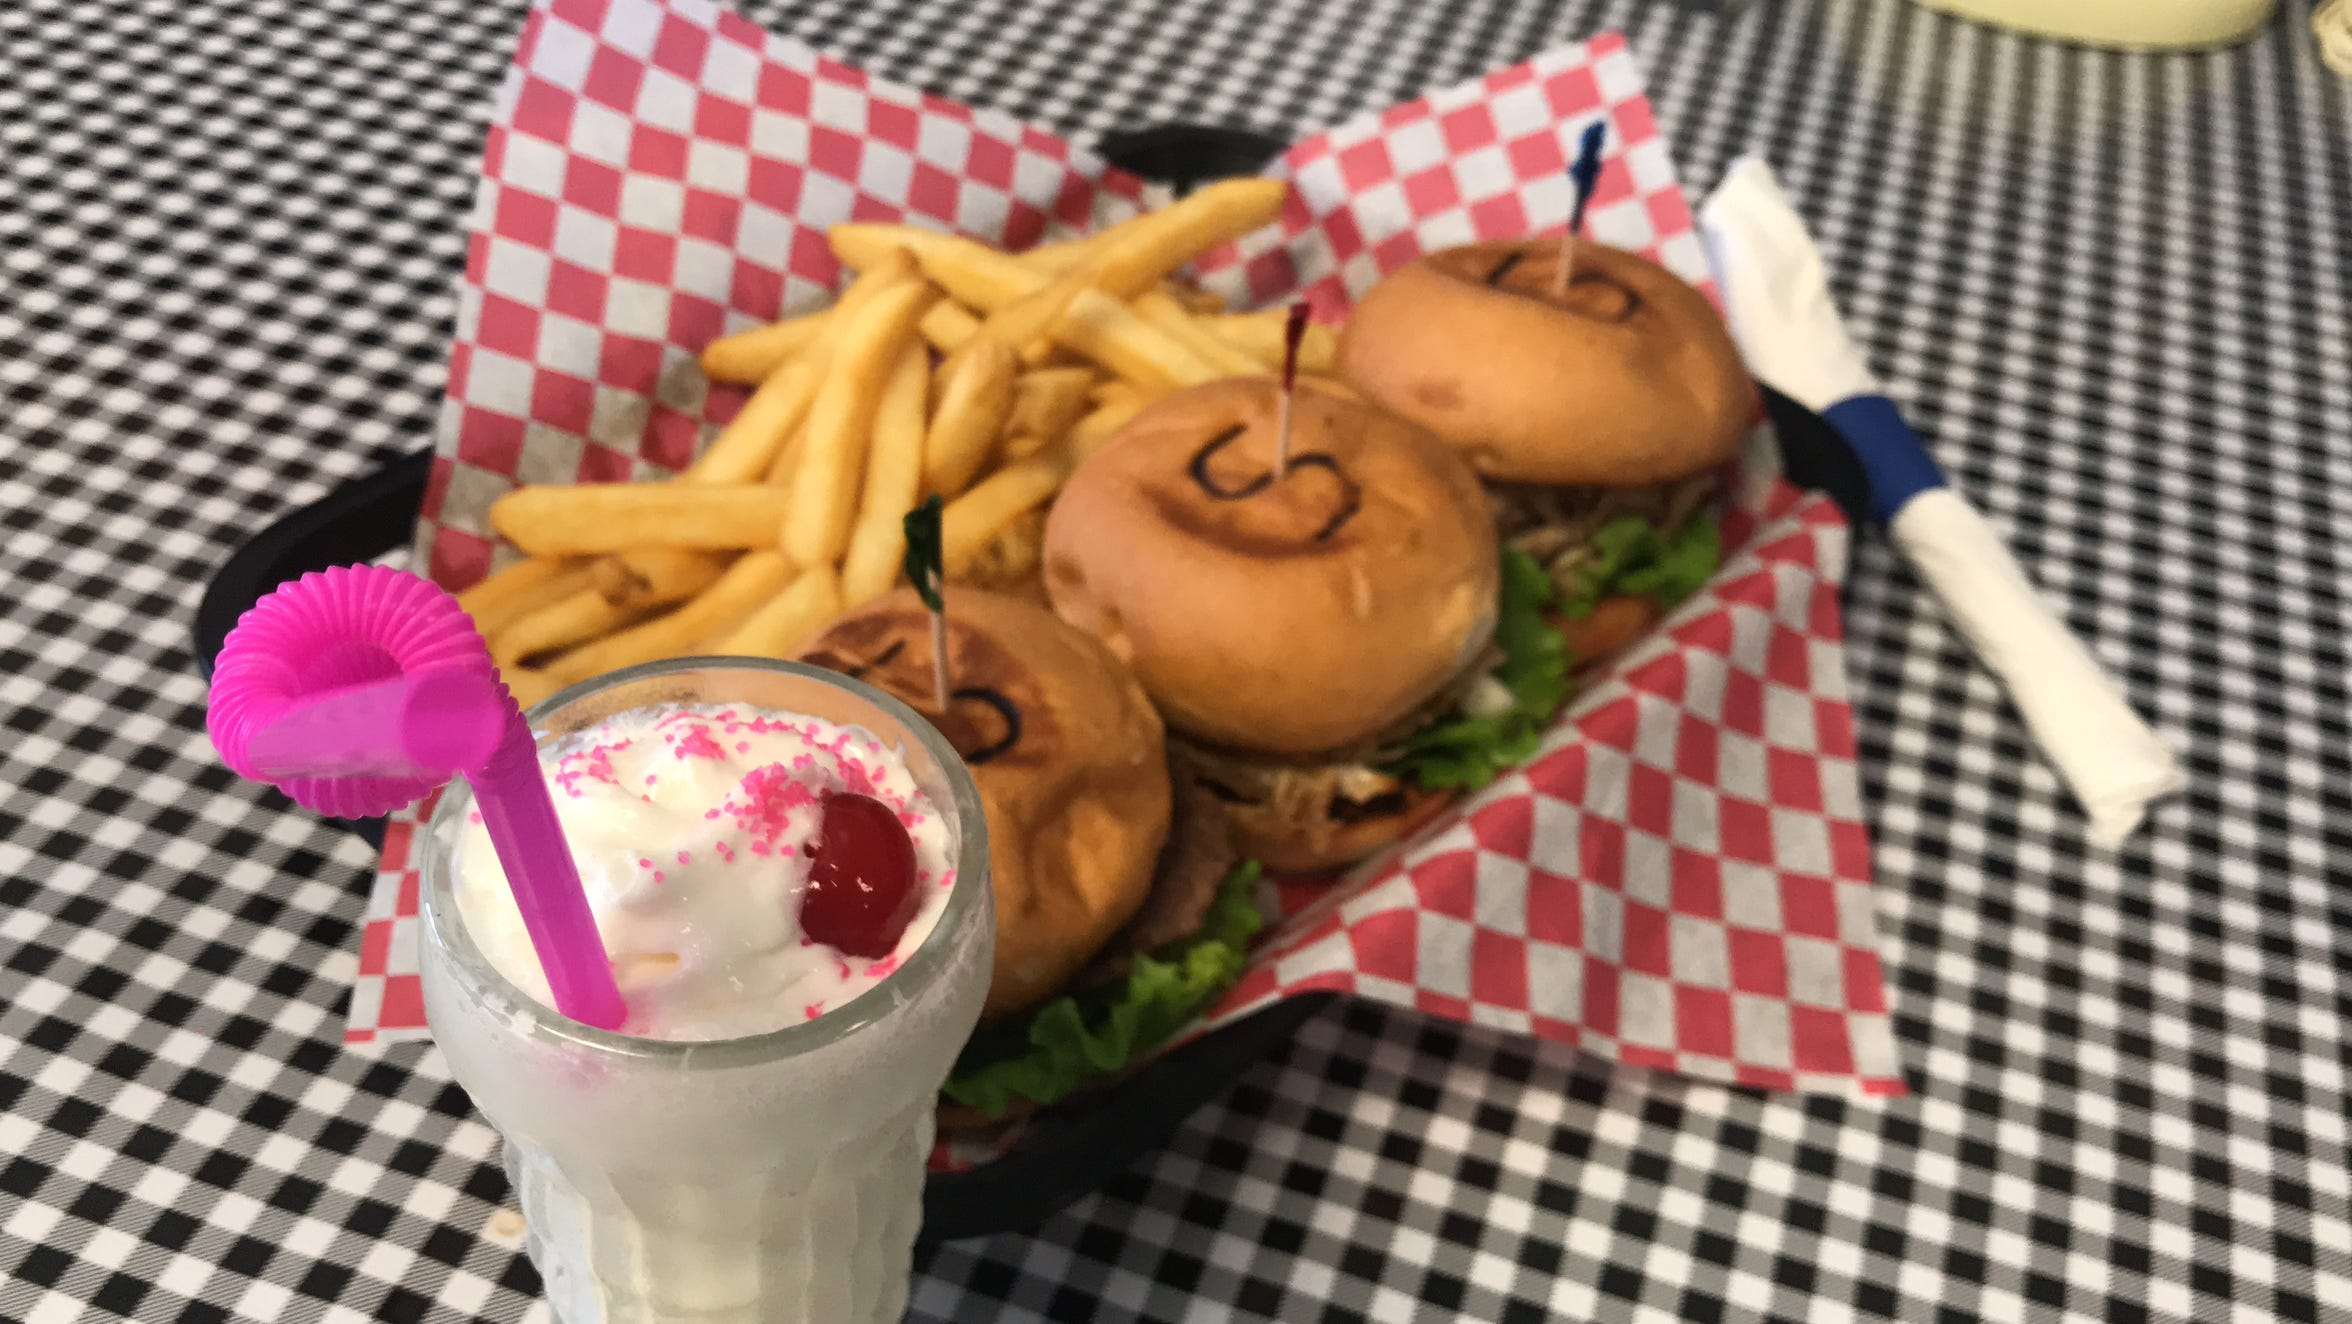 Sandi's Diner offers authentic all-American food to Corpus Christi residents.